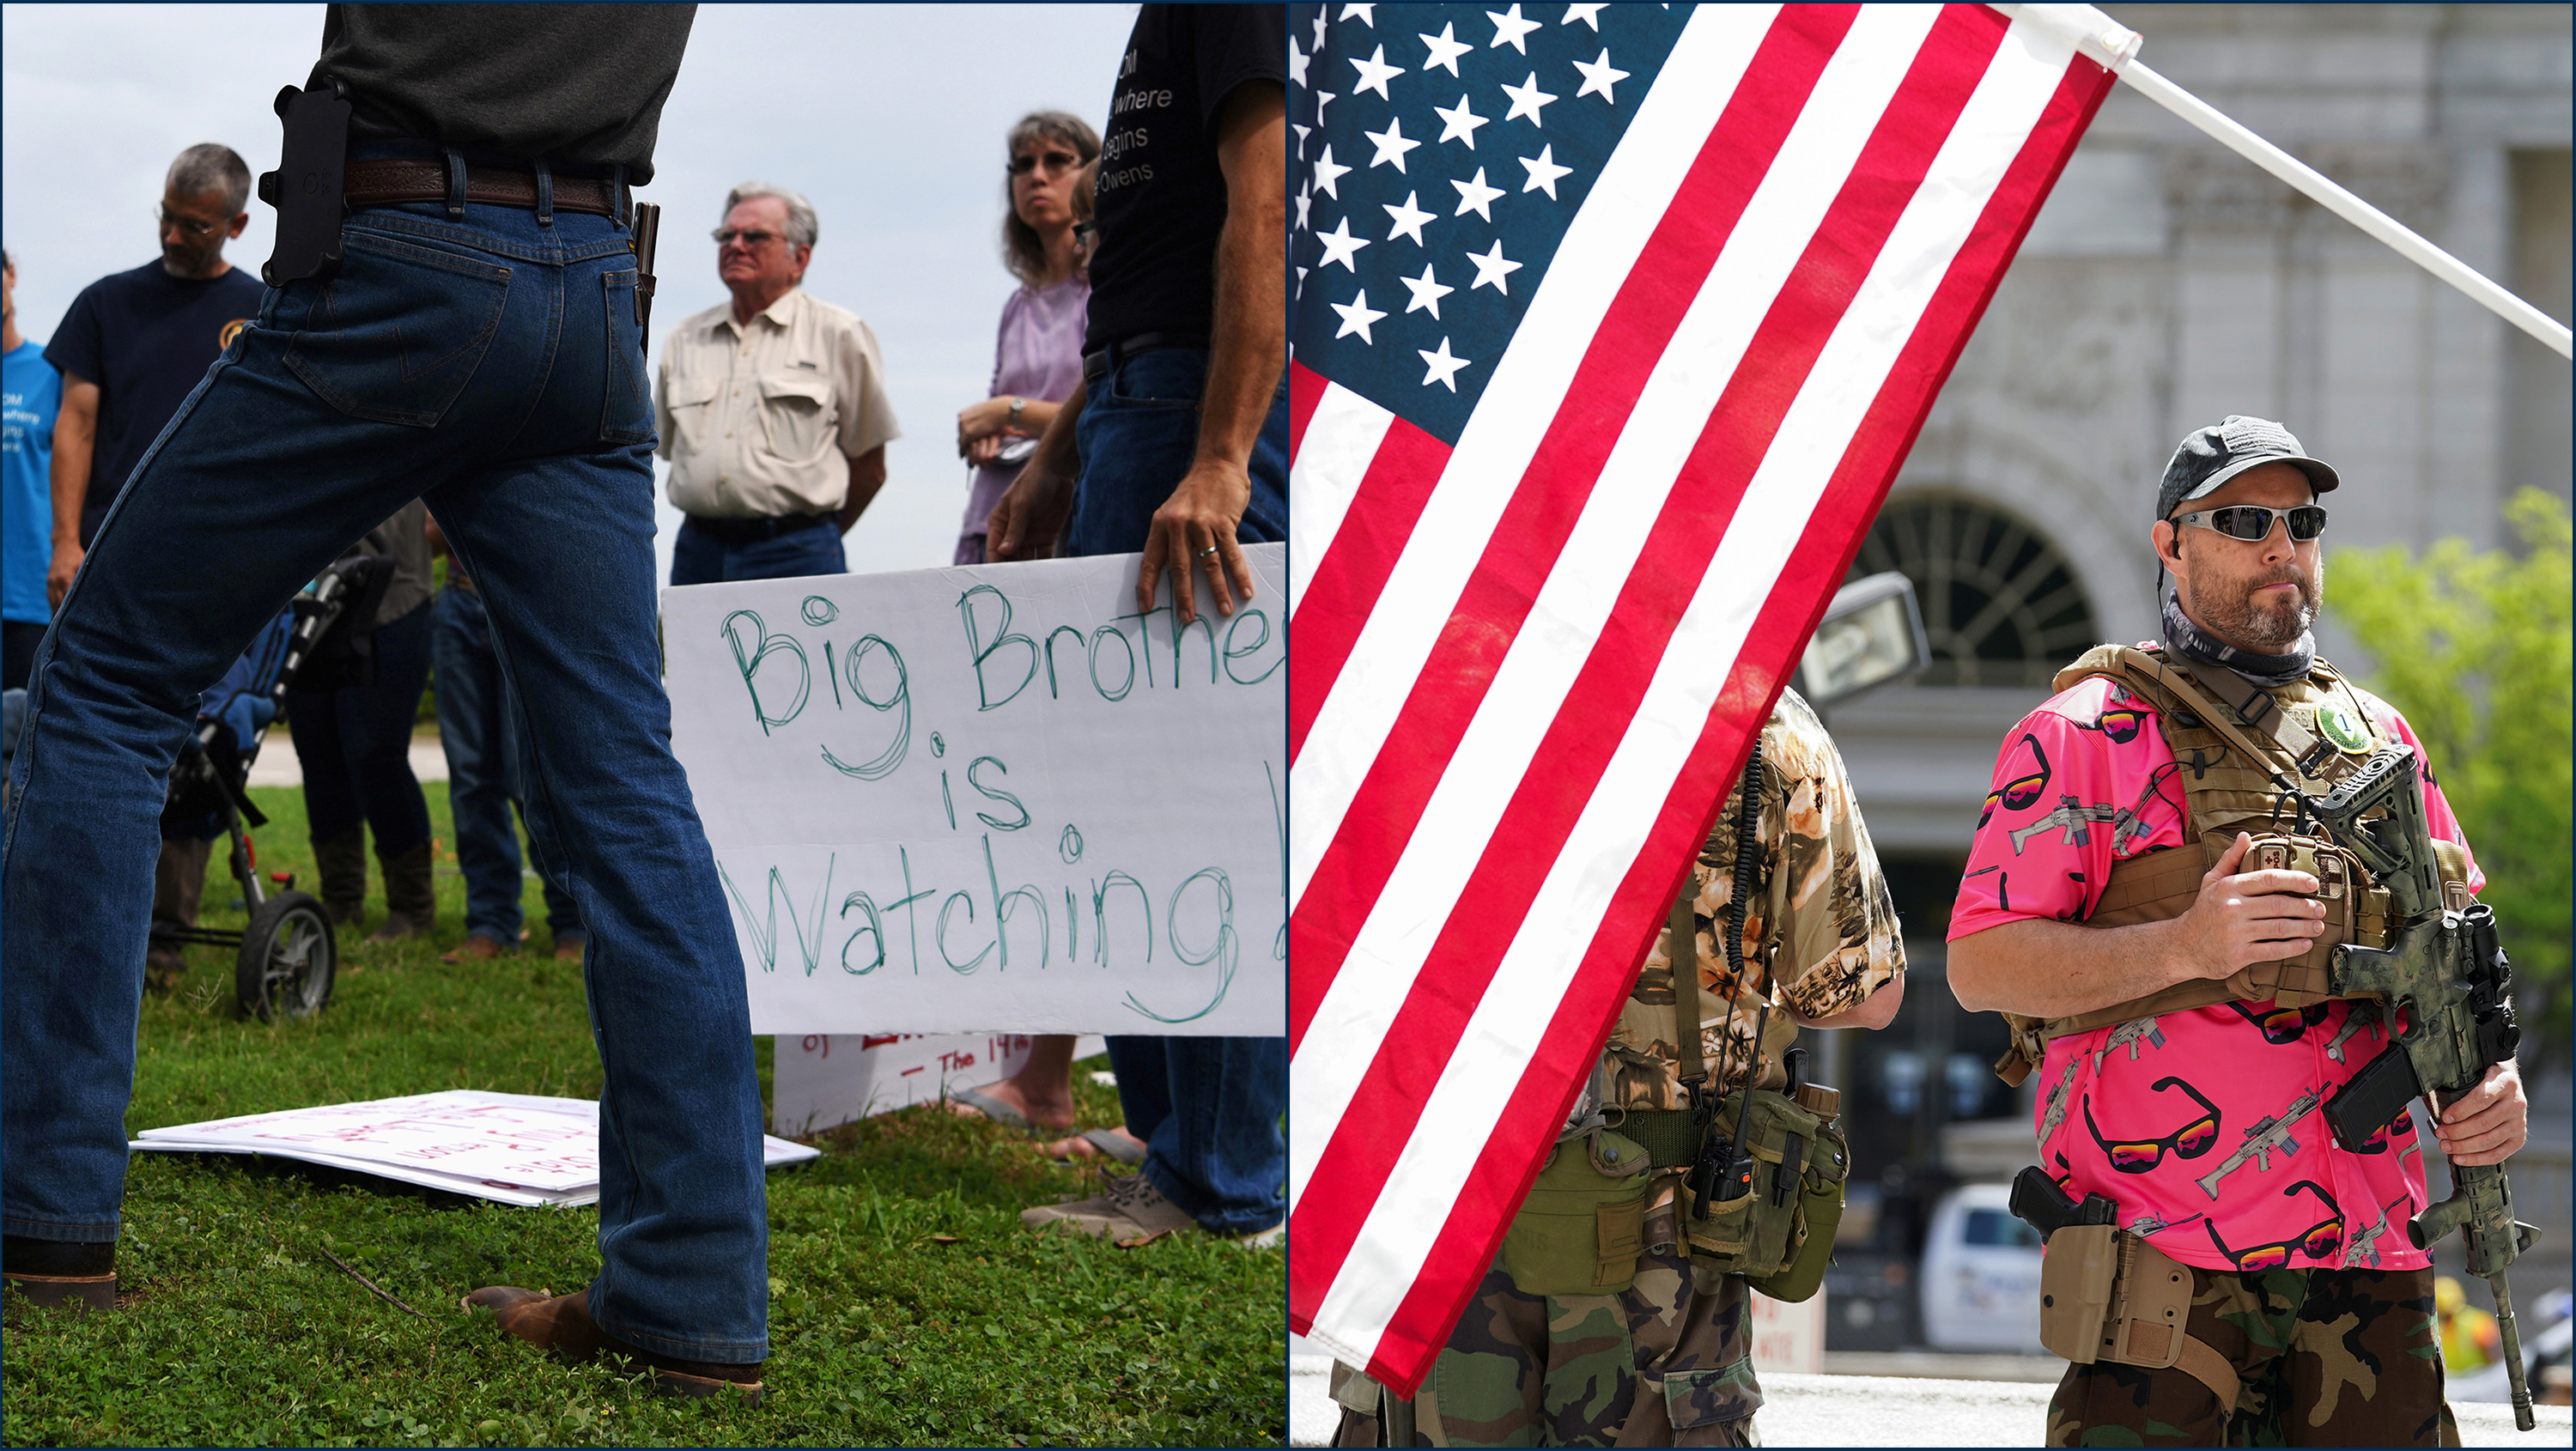 "The image is a split screen showing on the right a small group gathered around holding signs, one of which says ""Big Brother is Watching."" The left image is of a demonstration where a protestor is heavily armed and standing on the steps of a state house. The photo shows"